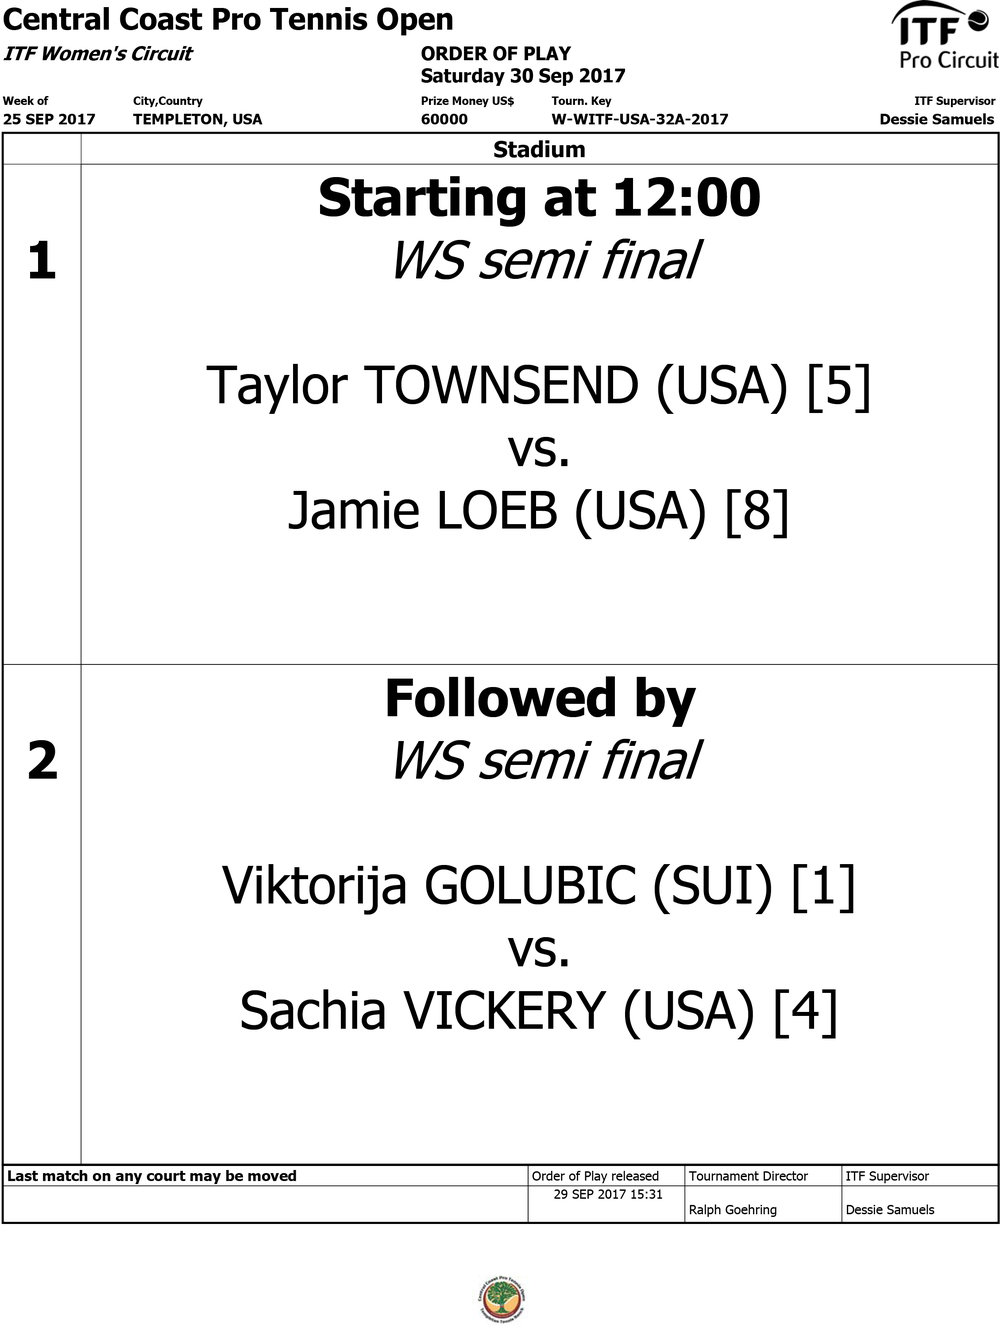 Saturday Singles Semifinal Order of Play,pdf.jpg